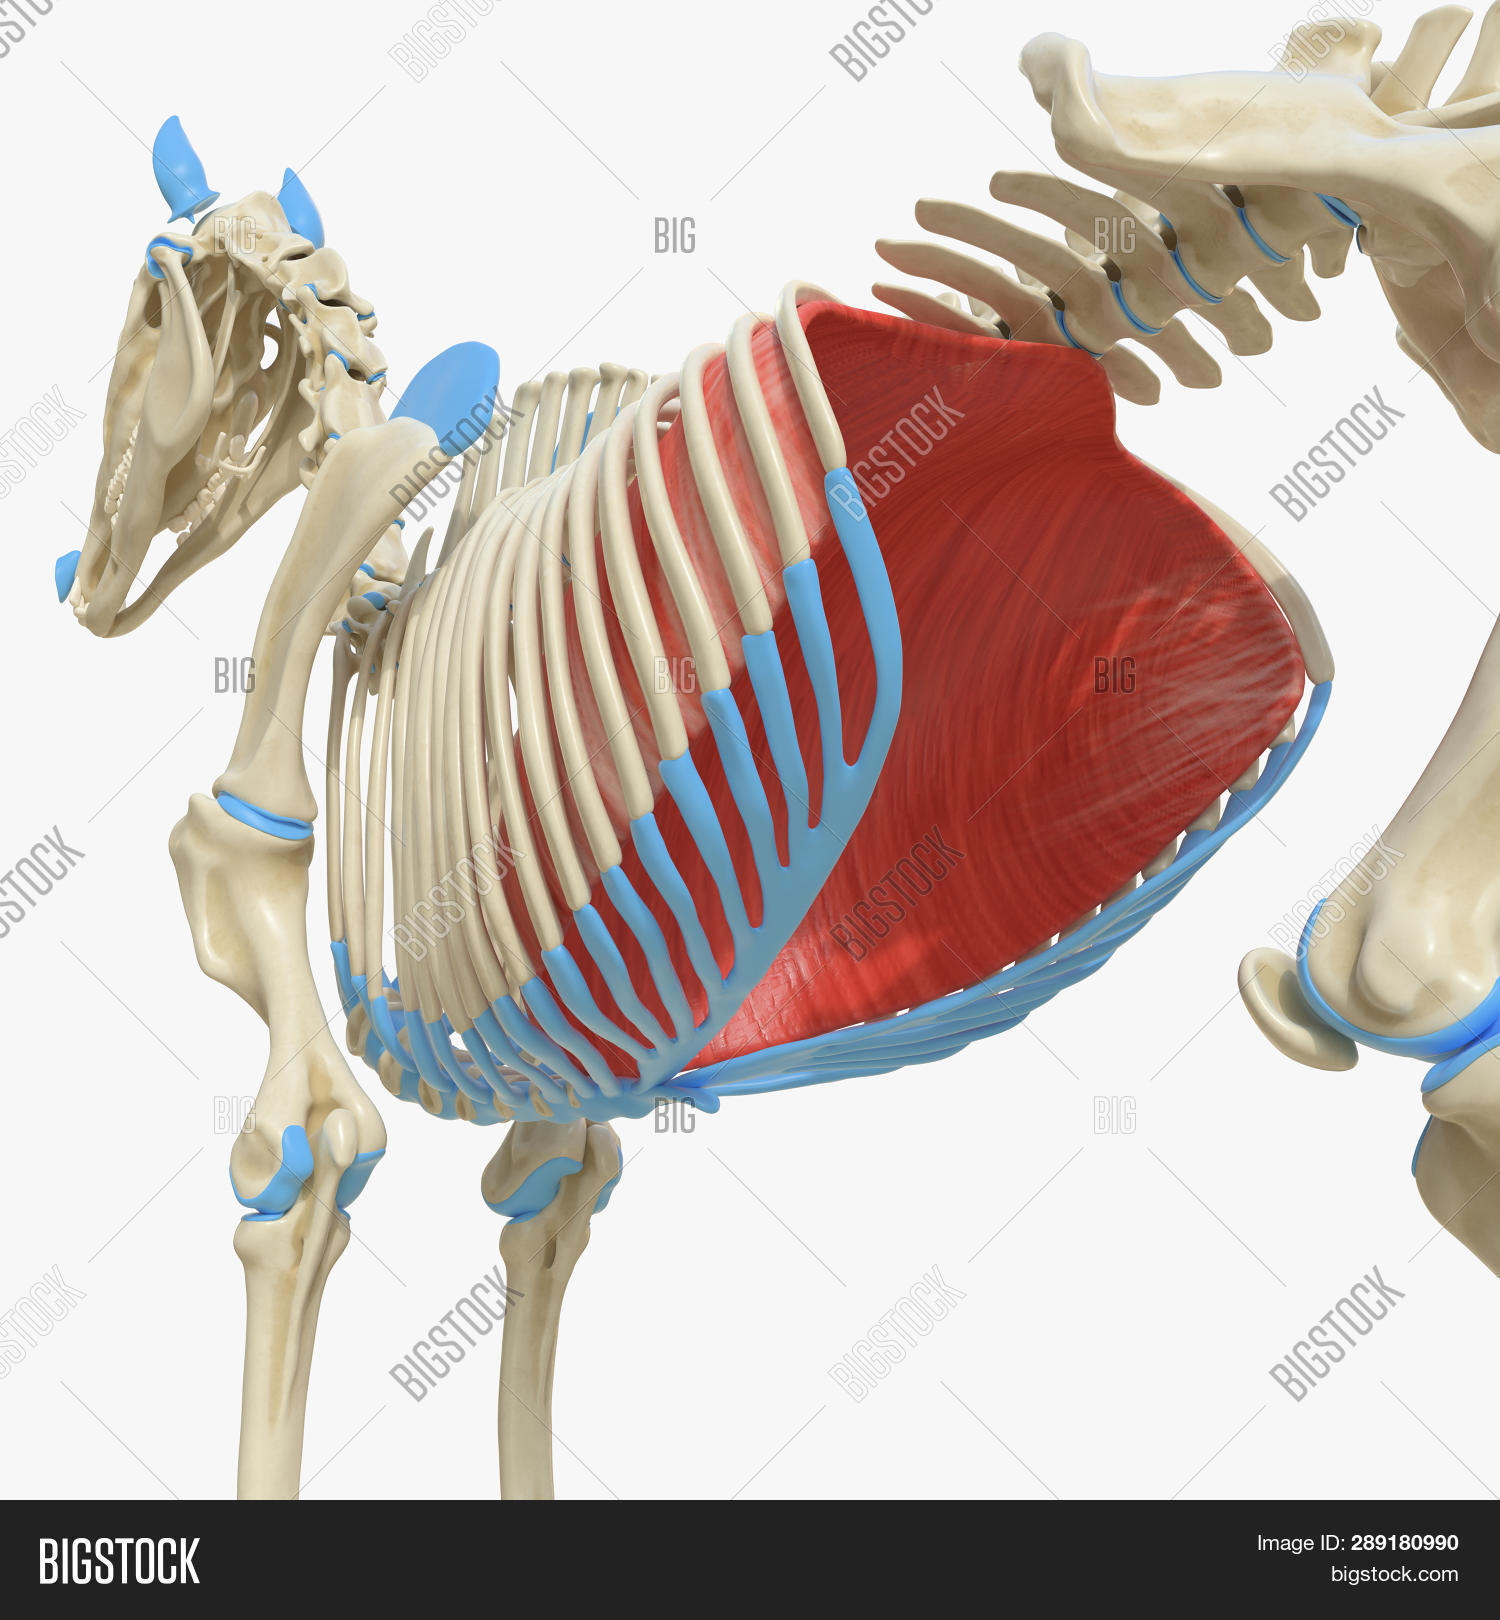 3d Rendered Medically Image & Photo (Free Trial) | Bigstock